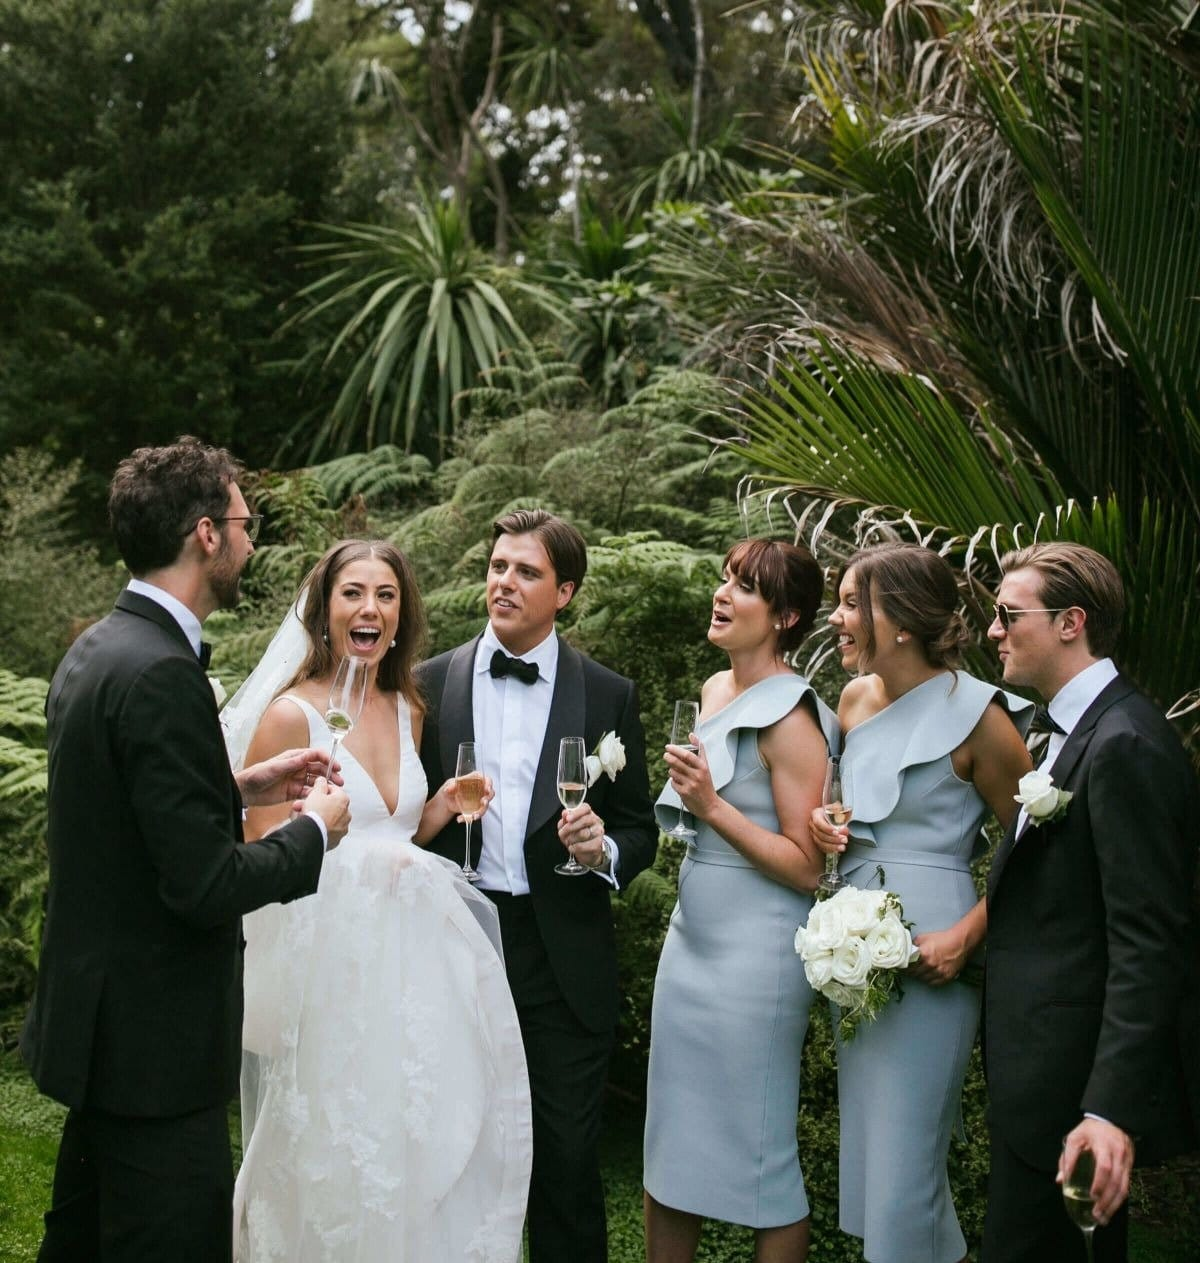 Bridal Party Poses In Melbourne Botanical Gardens For Wedding Photos